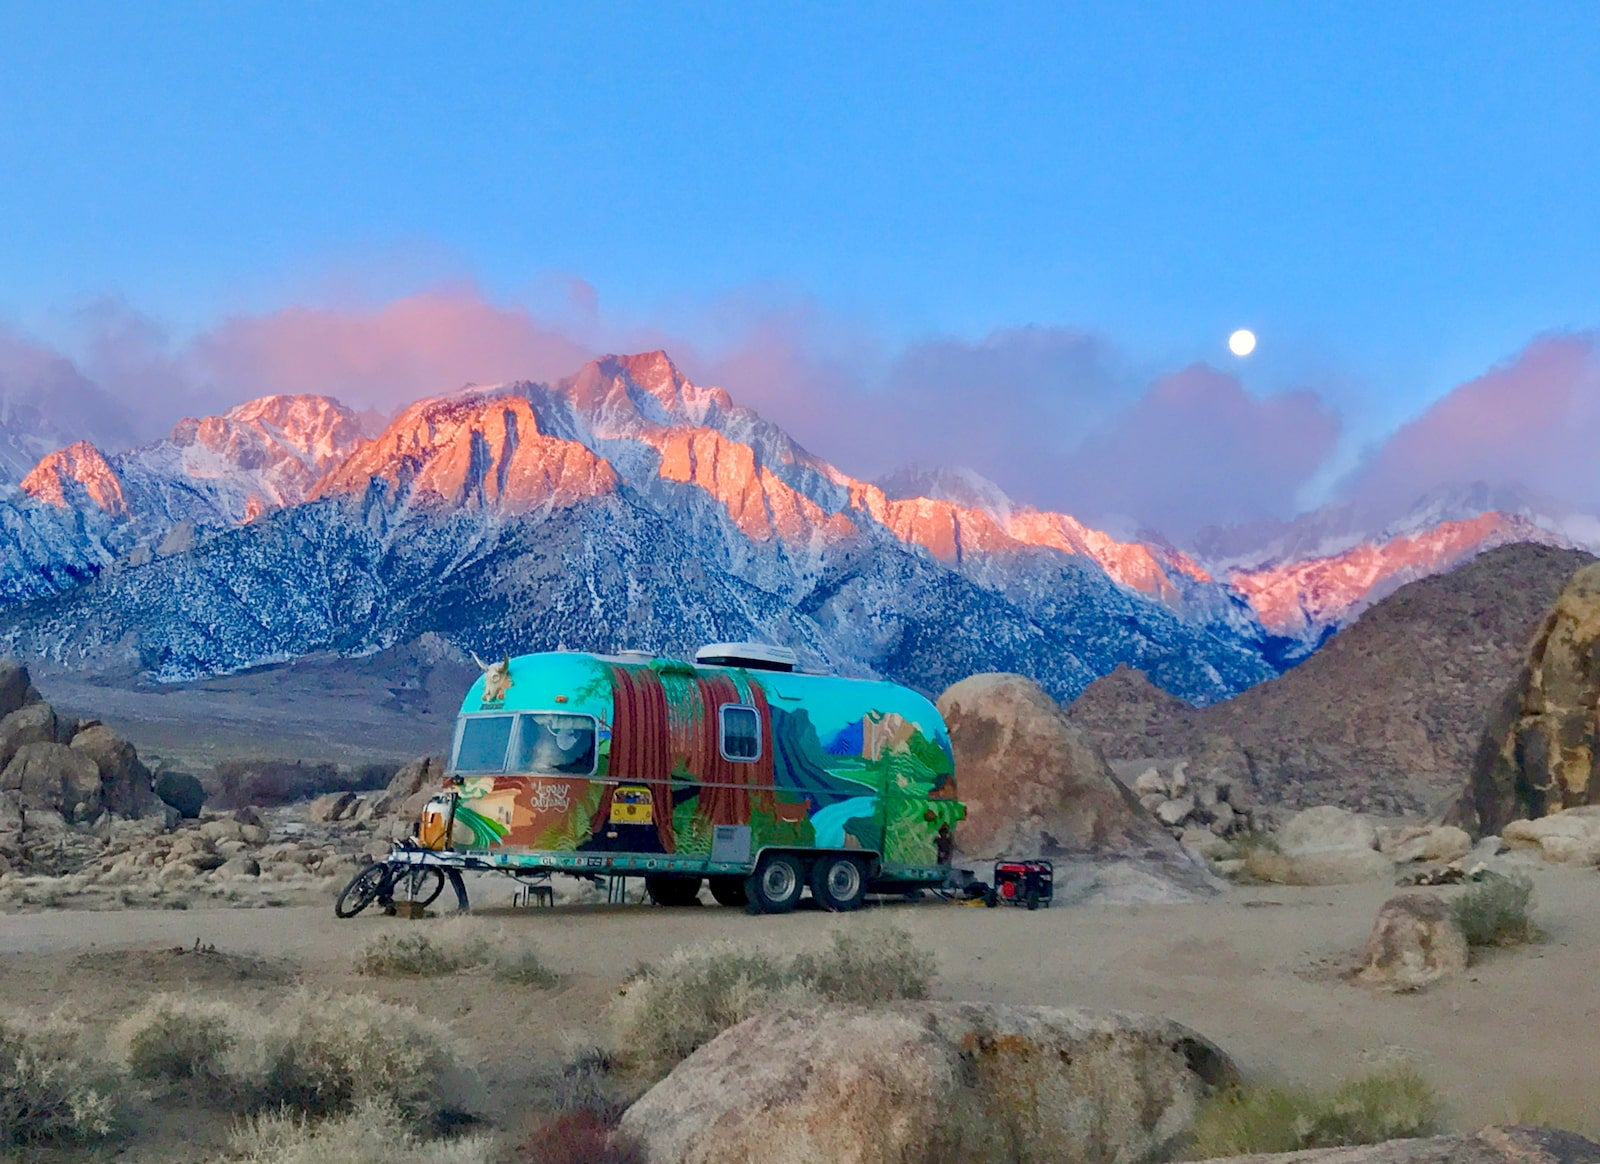 Pink light of dusk hitting snow capped mountains with a painted airstream in the foreground.